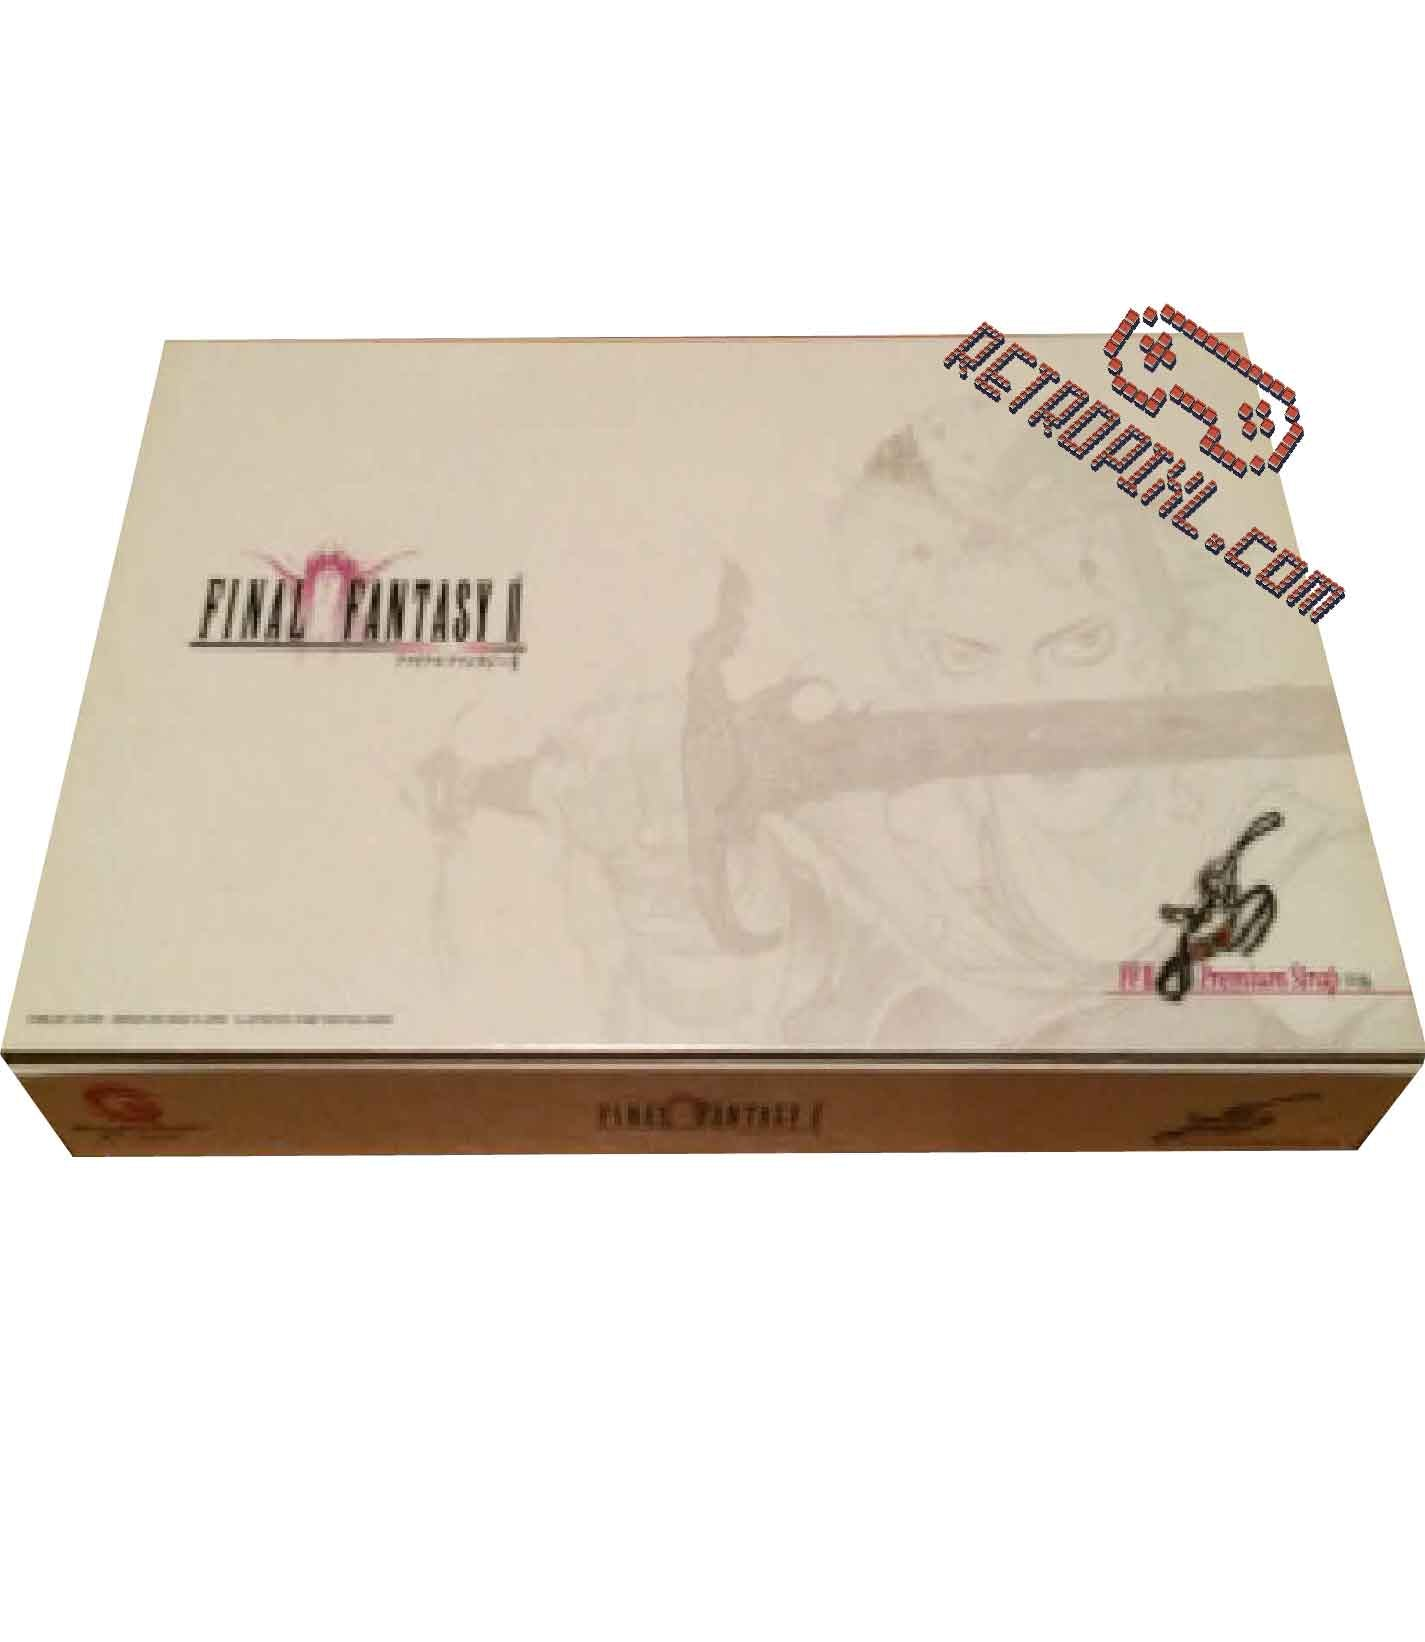 Bandai Wonderswan Color Final Fantasy II LIMITED EDITION